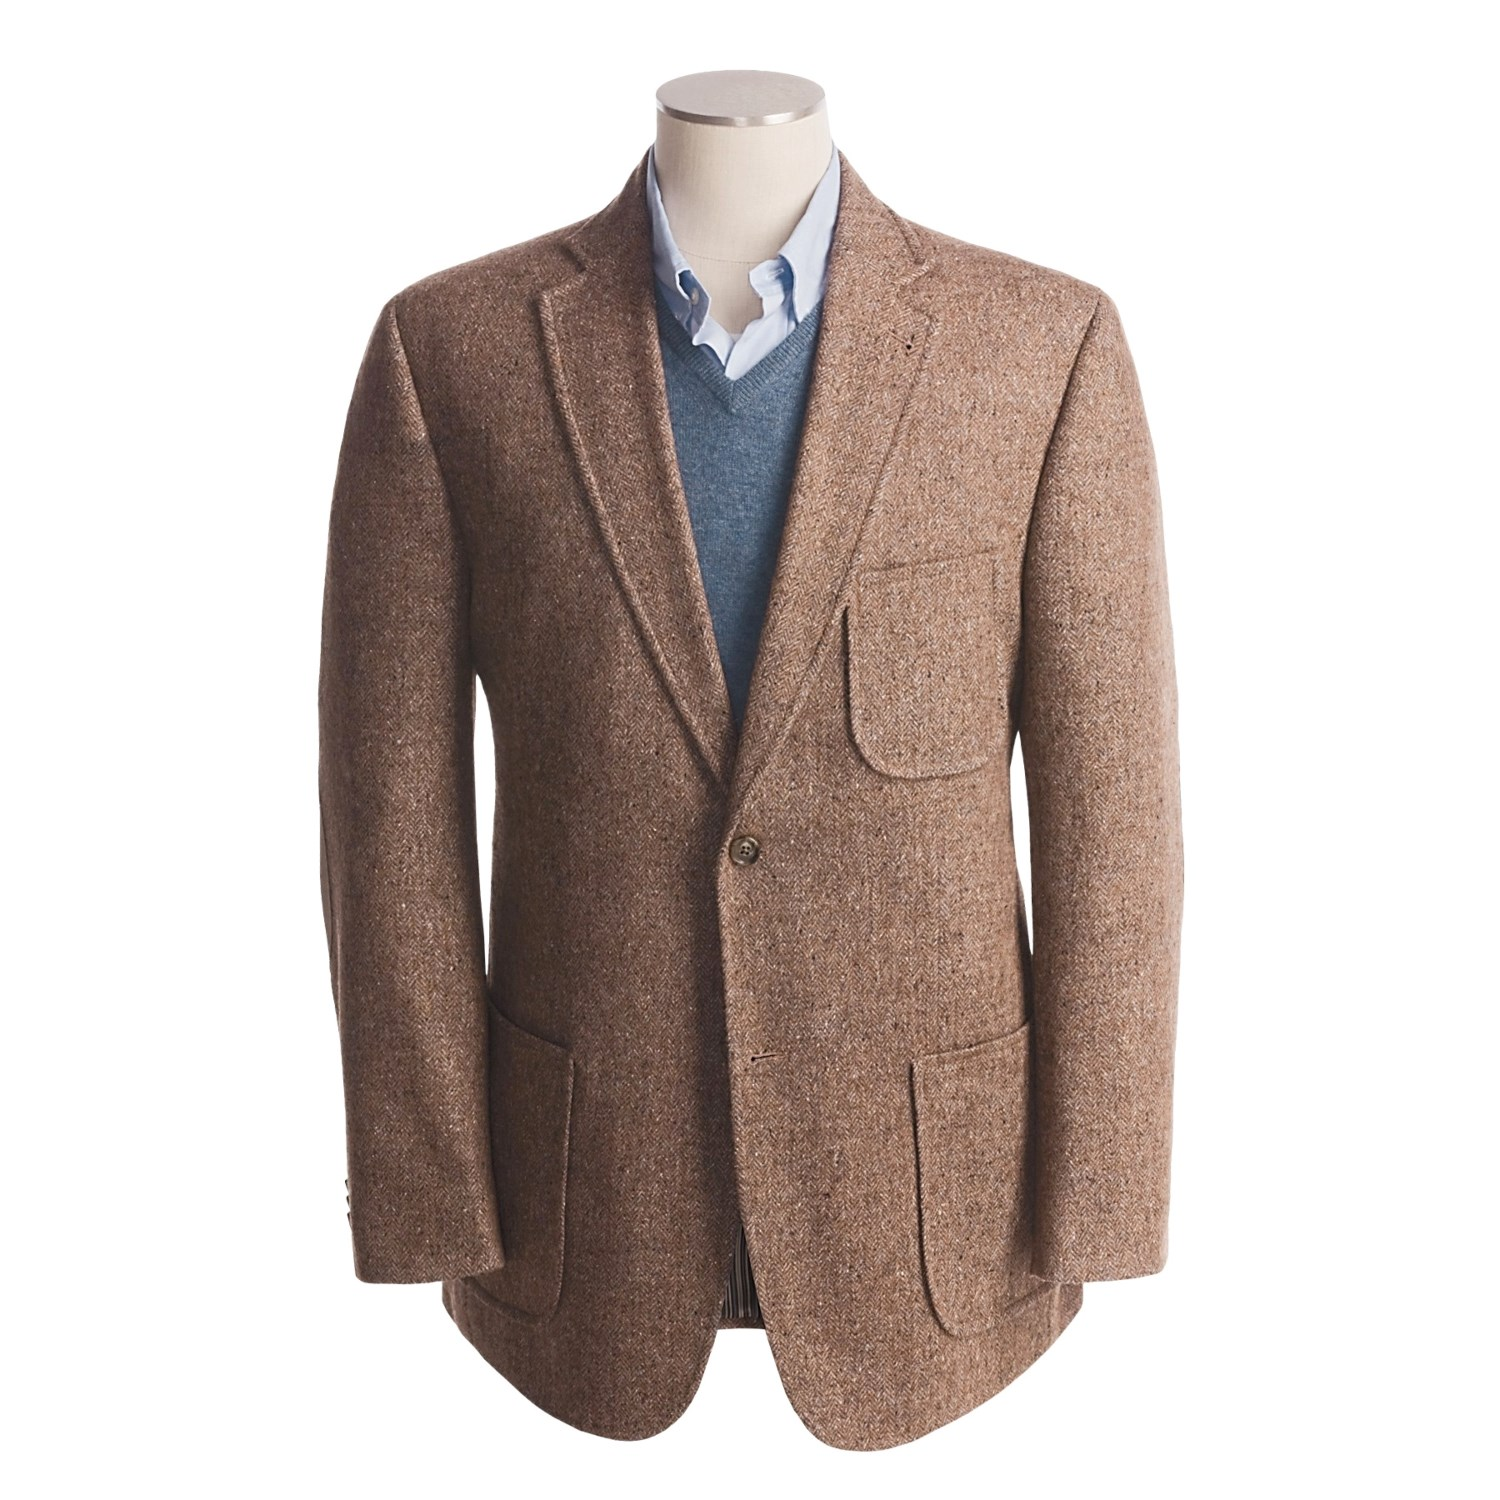 Designed with a herringbone pattern this sport coat is cut for the gentleman who is seeking a fit with a roomier chest and waist. It features a notch lapel and center vent and pairs well with a .